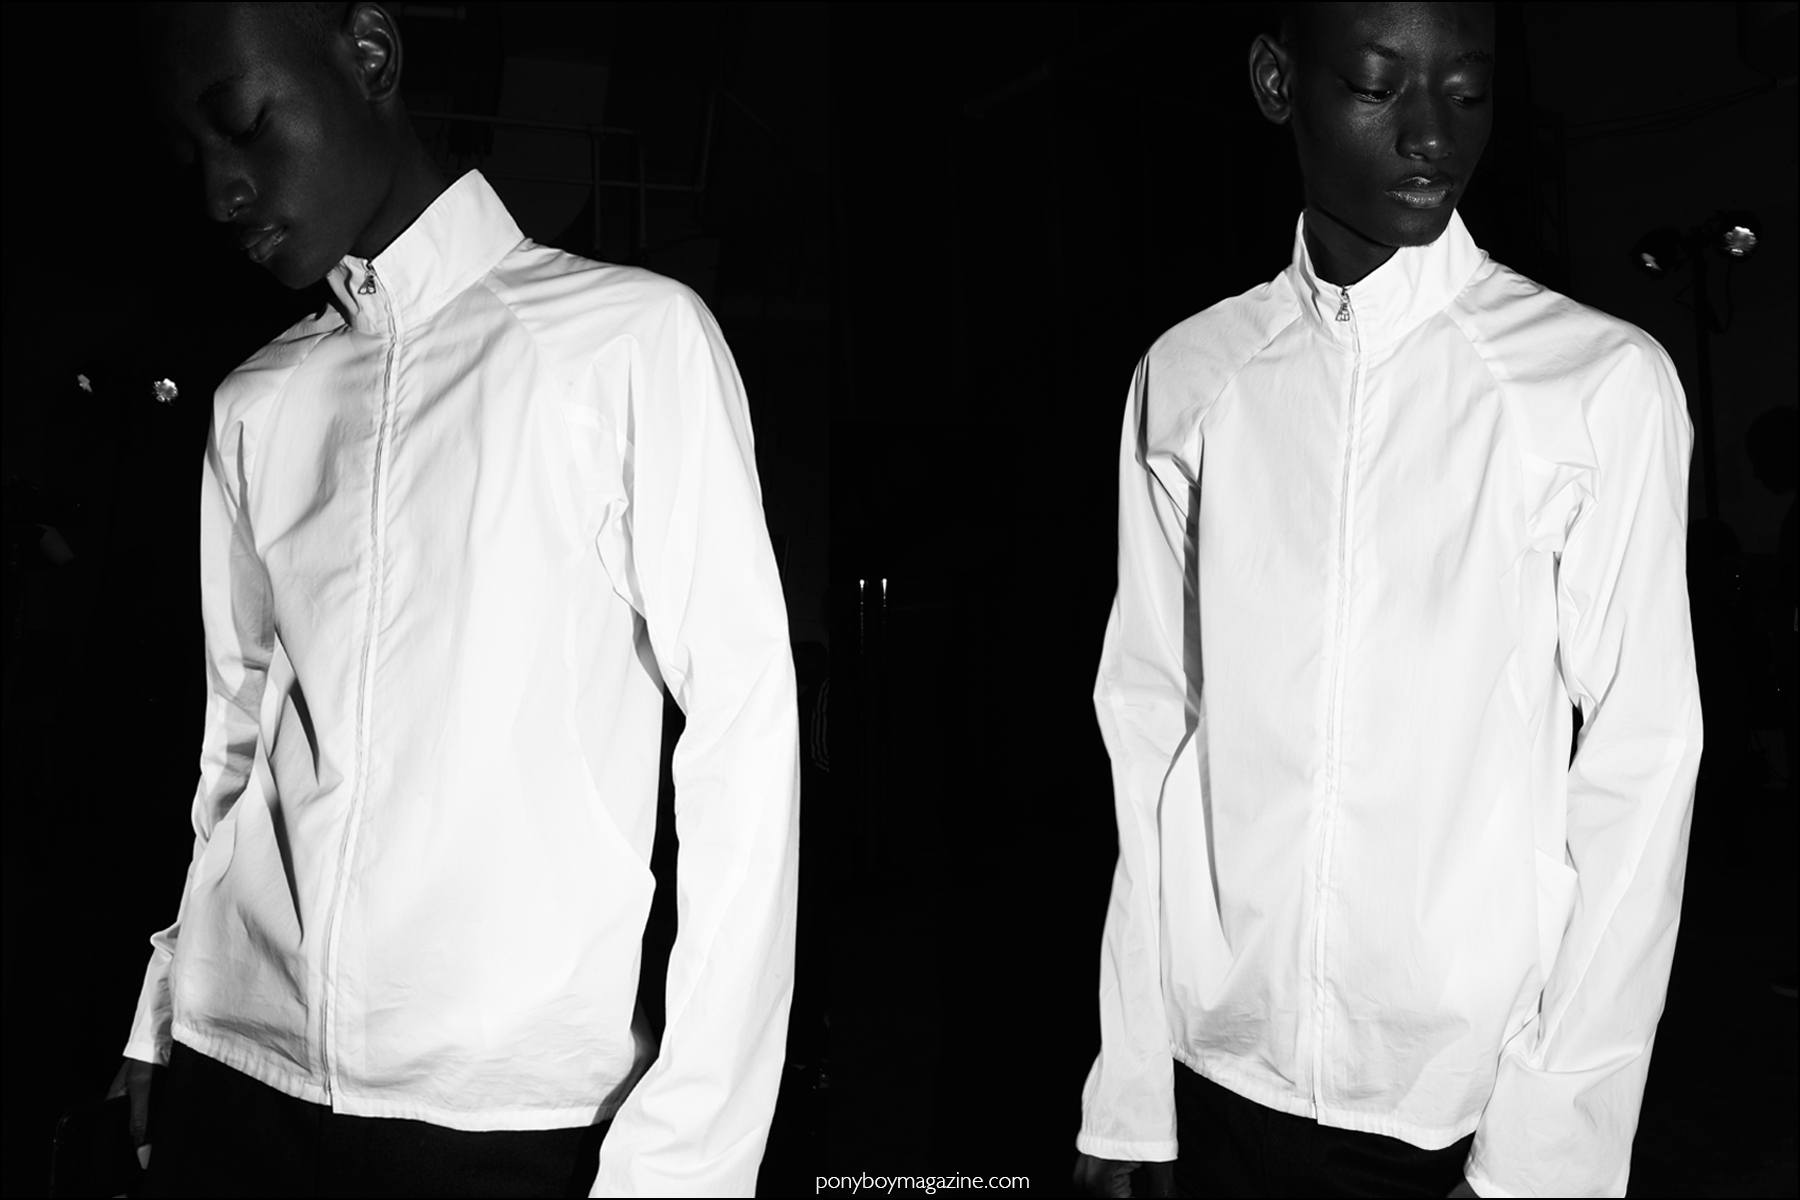 Male model Youssouf Bamba in a white jacket, photographed backstage at Duckie Brown F/W16 menswear show. Photography by Alexander Thompson for Ponyboy magazine NY.